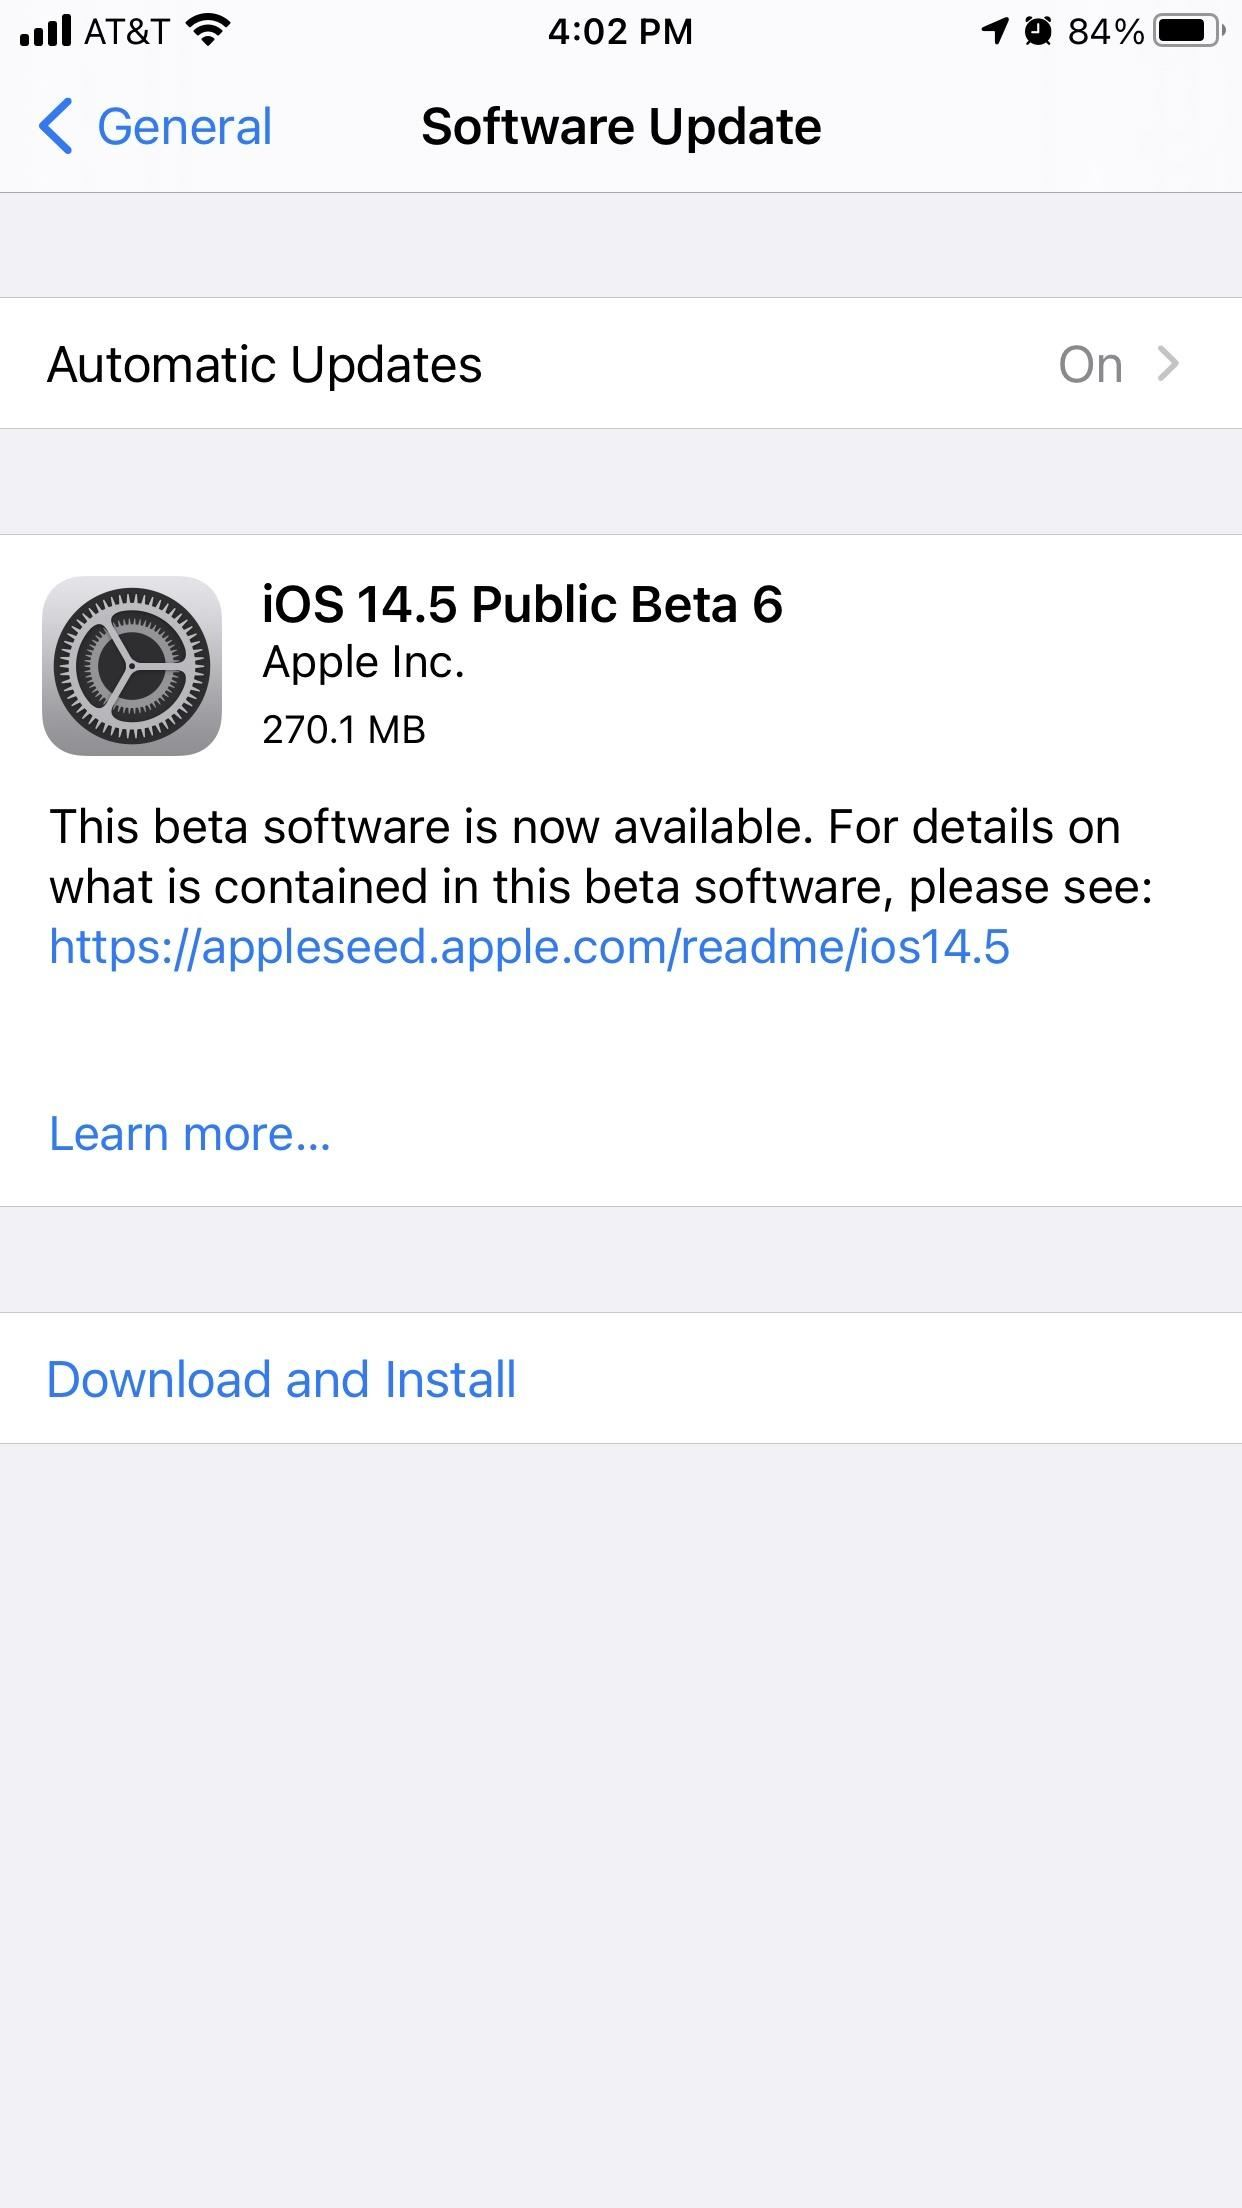 Apple Releases iOS 14.5 Public Beta 6, Features New Siri Voices & Battery Health Calibration for iPhone 11 Line